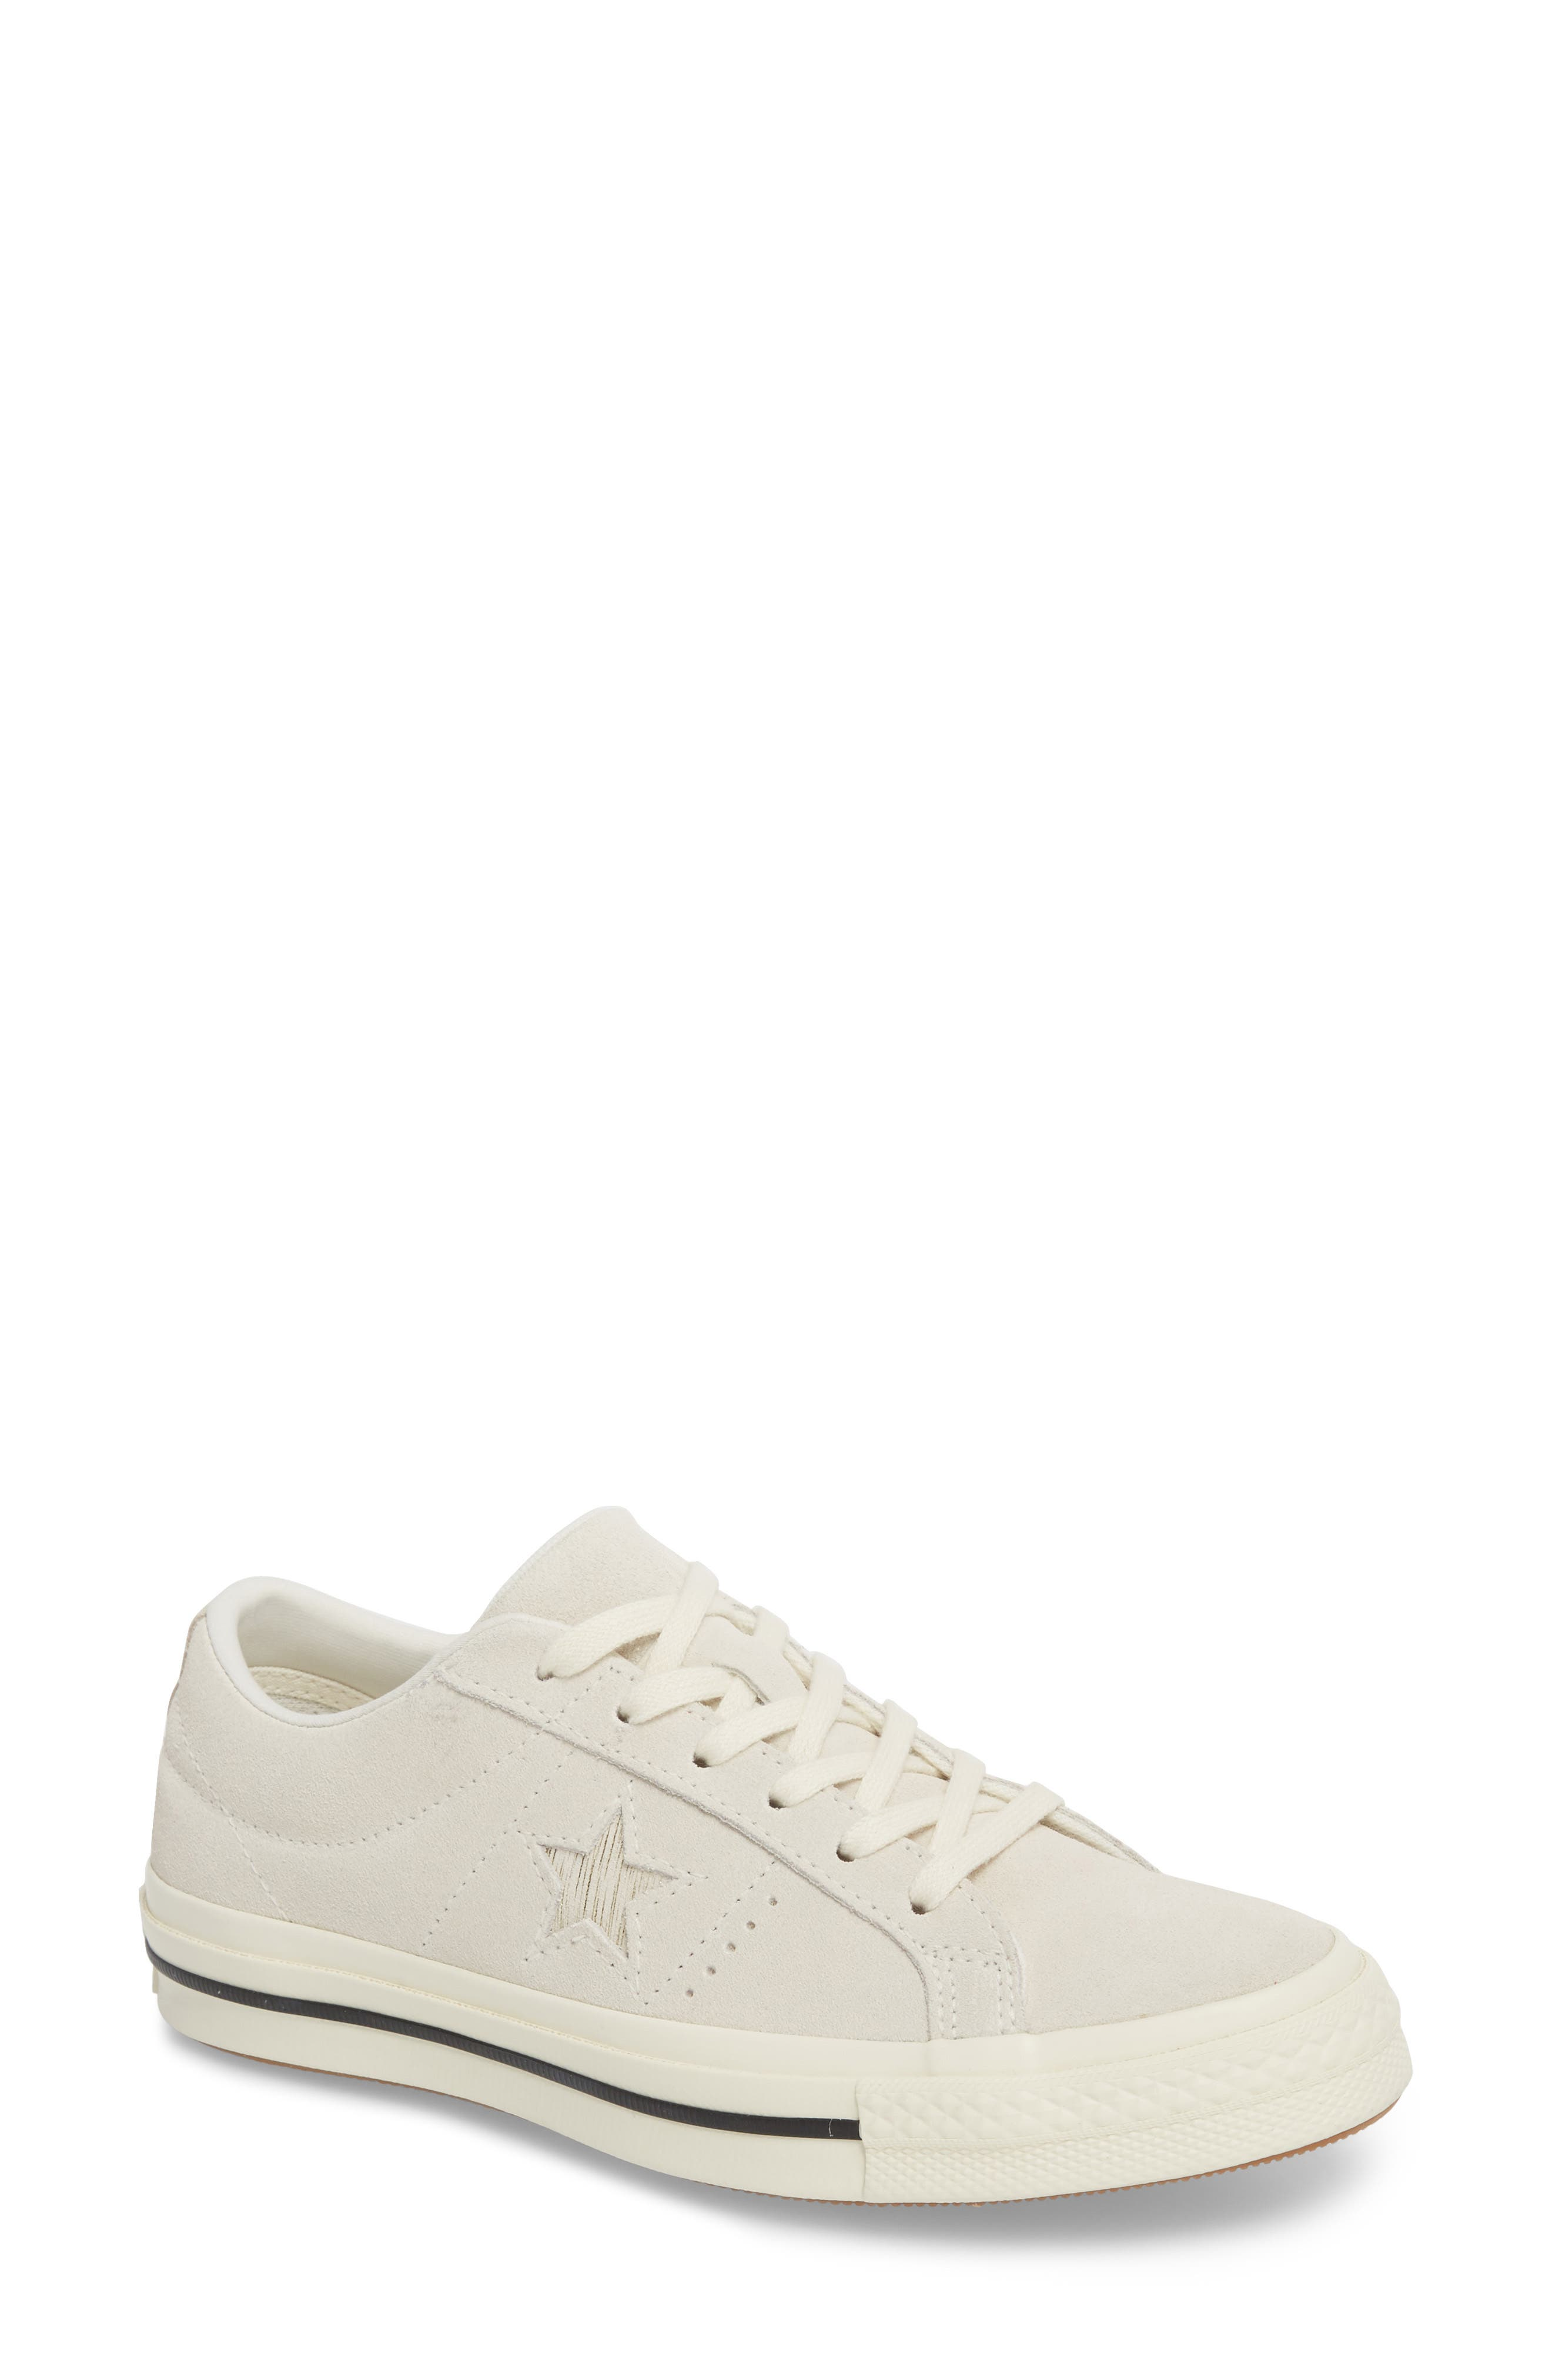 ONE STAR SUEDE LOW TOP SNEAKER